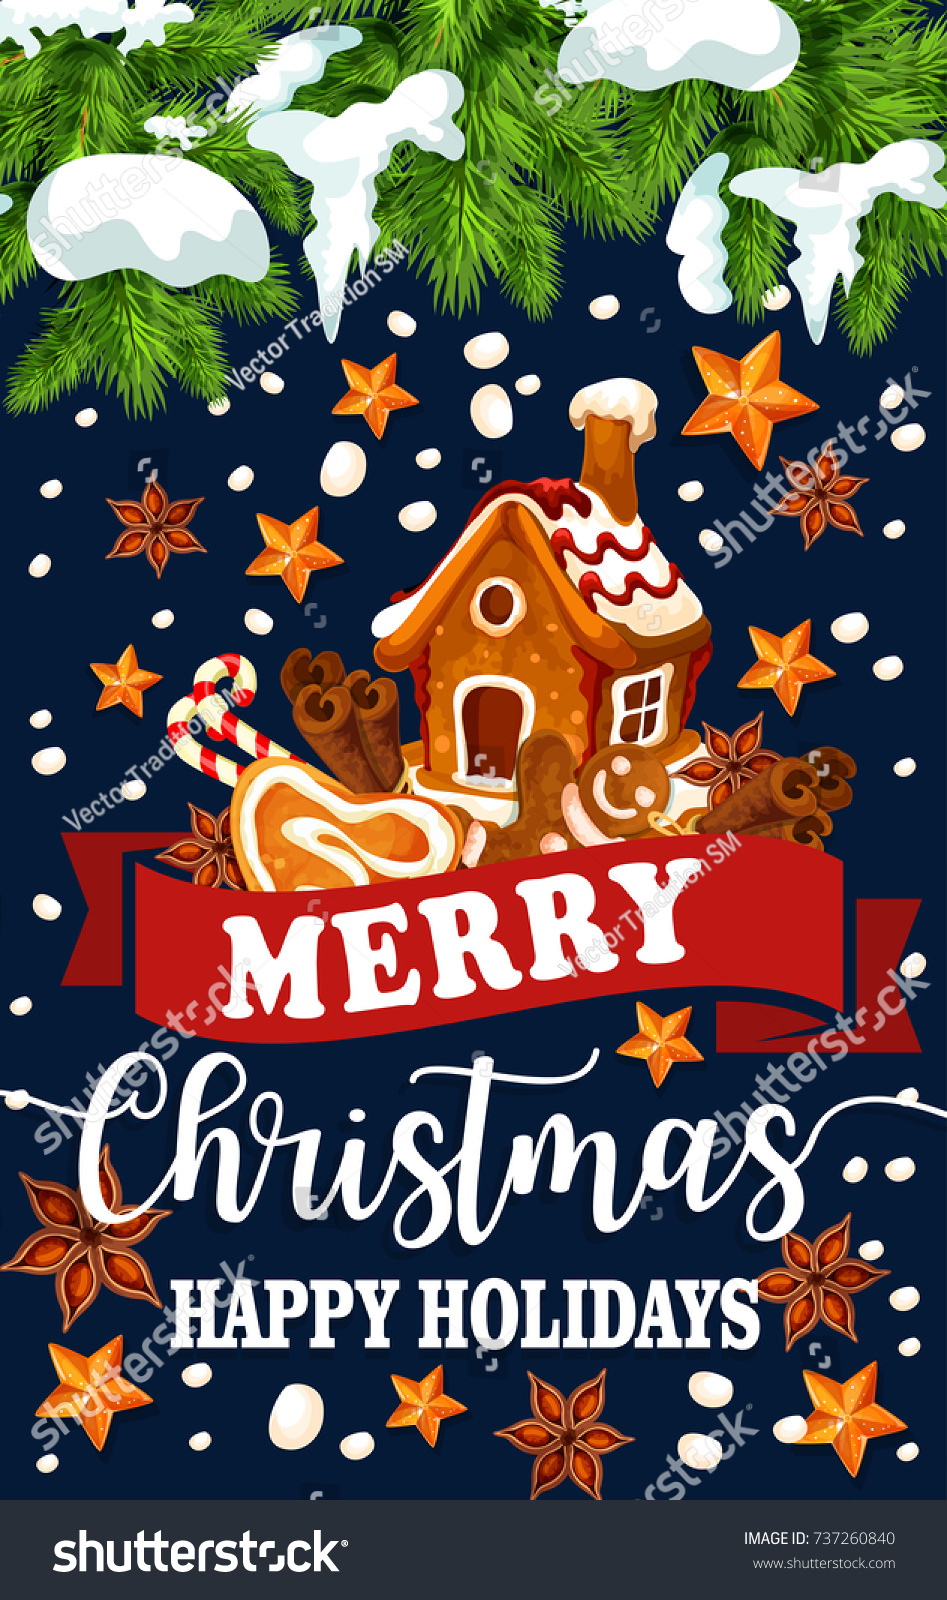 Merry christmas happy holidays greeting card stock vector 737260840 merry christmas happy holidays greeting card of gingerbread cookie house decoration on christmas tree vector kristyandbryce Gallery